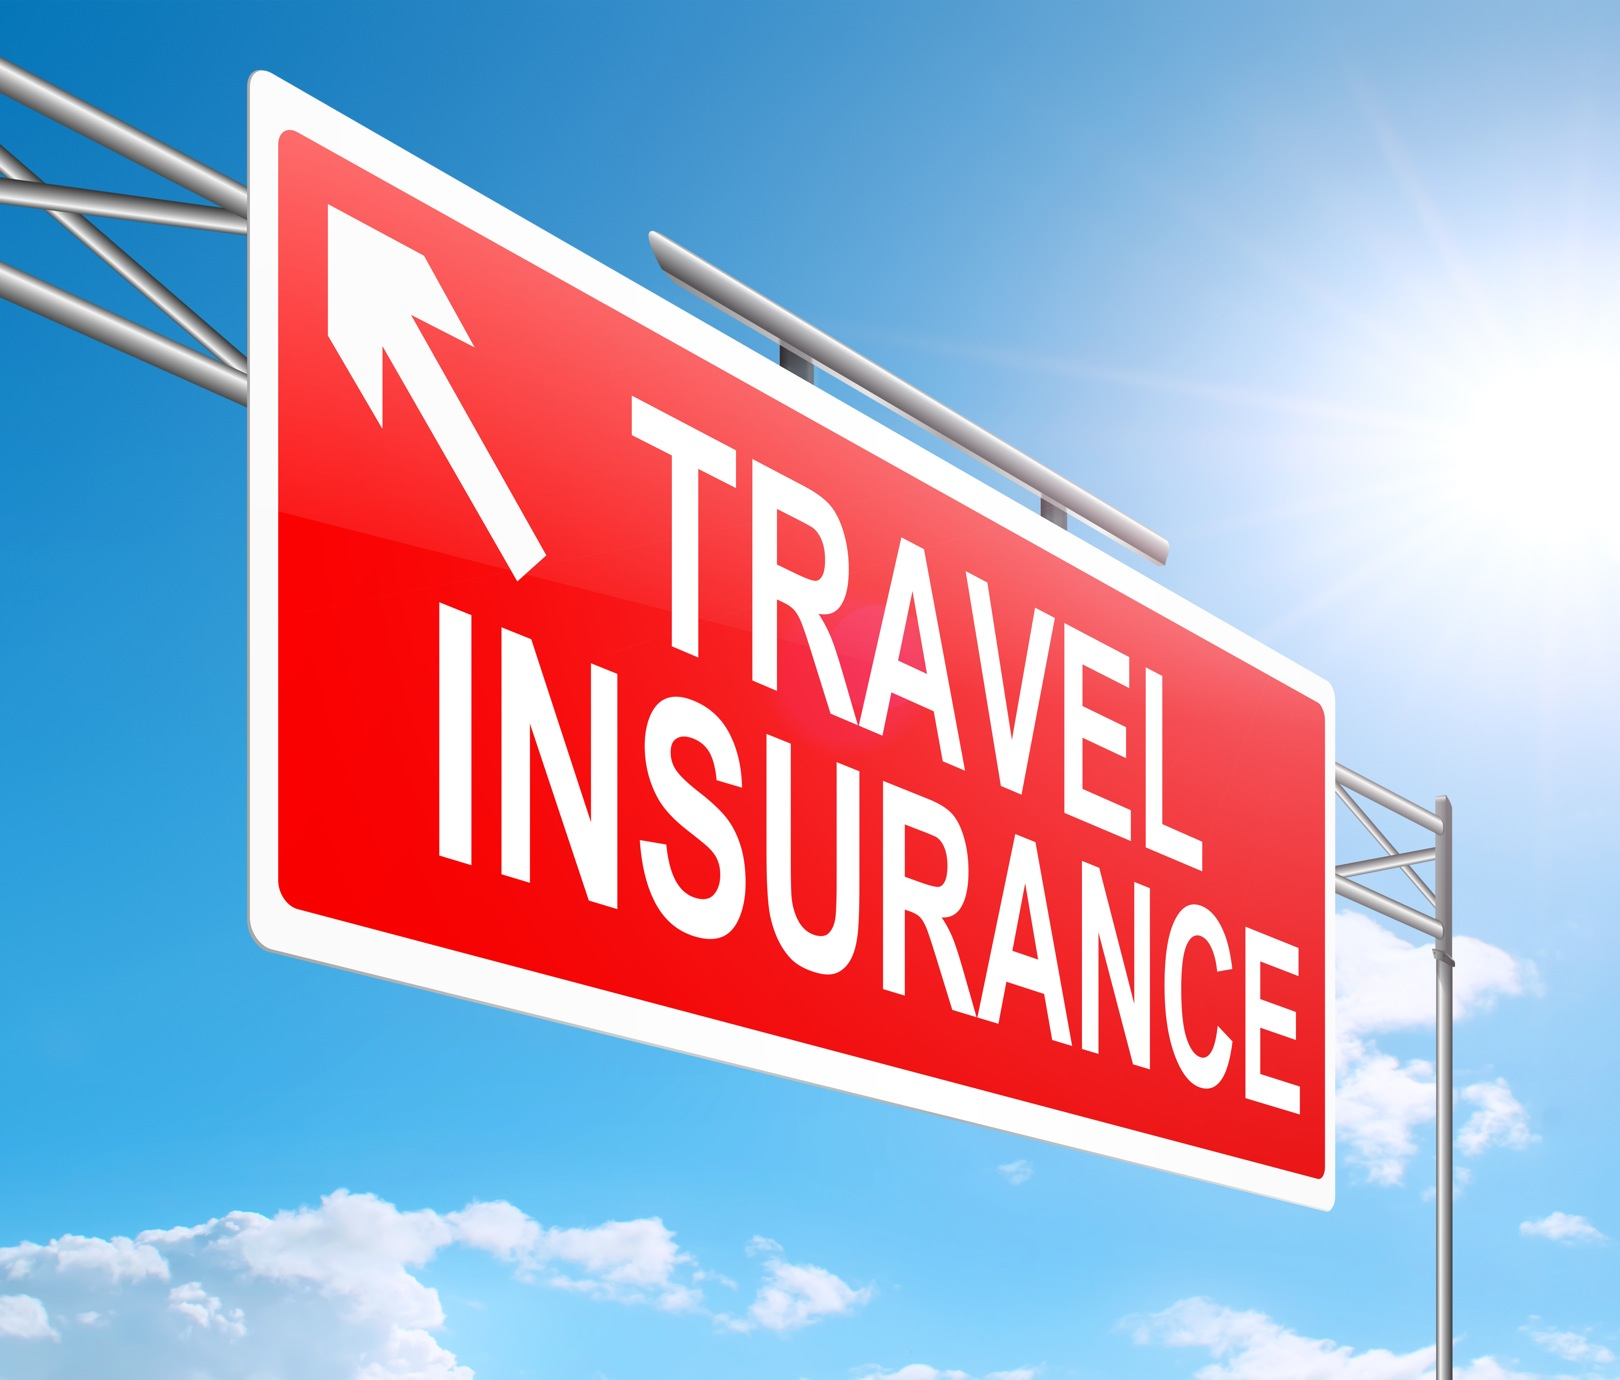 Travel Insurance  Insurance Shops. Opiate Prescription Drugs Club Soda Nutrition. Assisted Living Sun City Az Beauty Box Photo. Online Bachelors Degree In Computer Science. Fafsa Approved Online Schools. Vanguard U S Growth Fund Failed The Bar Exam. Capacity Planning Template Carpeting A House. Divorce Attorneys In Atlanta Ga. How To Make A Website With Html